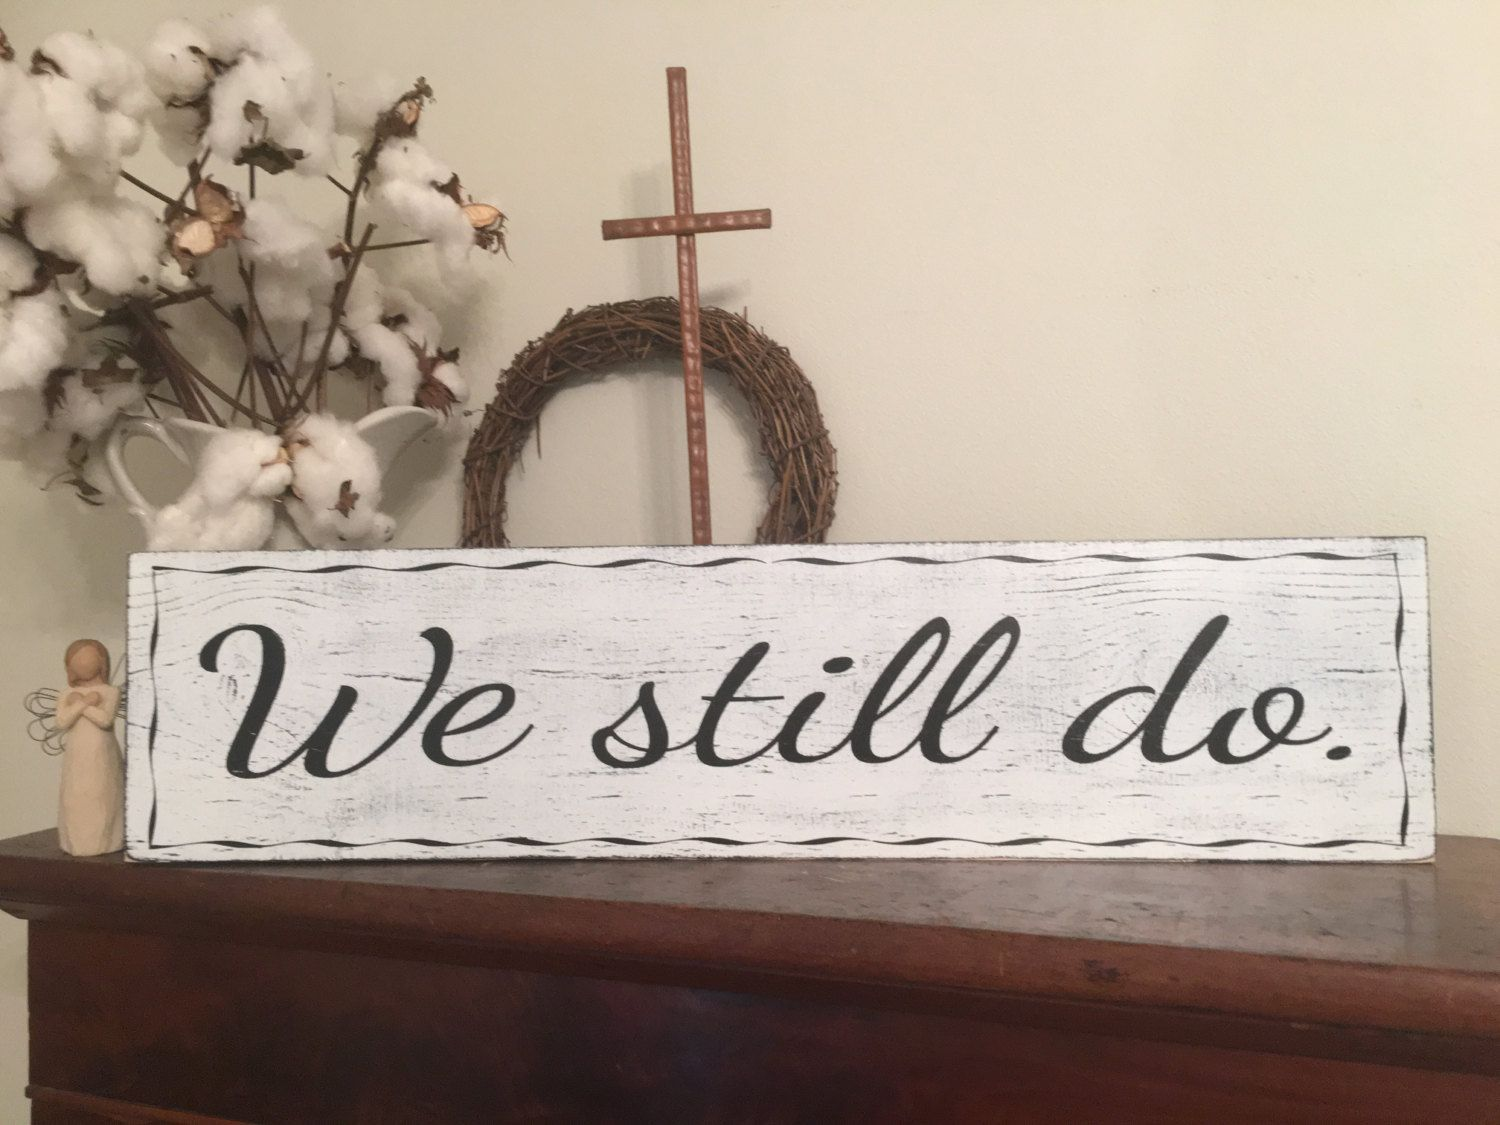 Wall Signs Decor Classy We Still Do Sign Fixer Upper Inspired Signs30X725 Rustic Wood Design Decoration